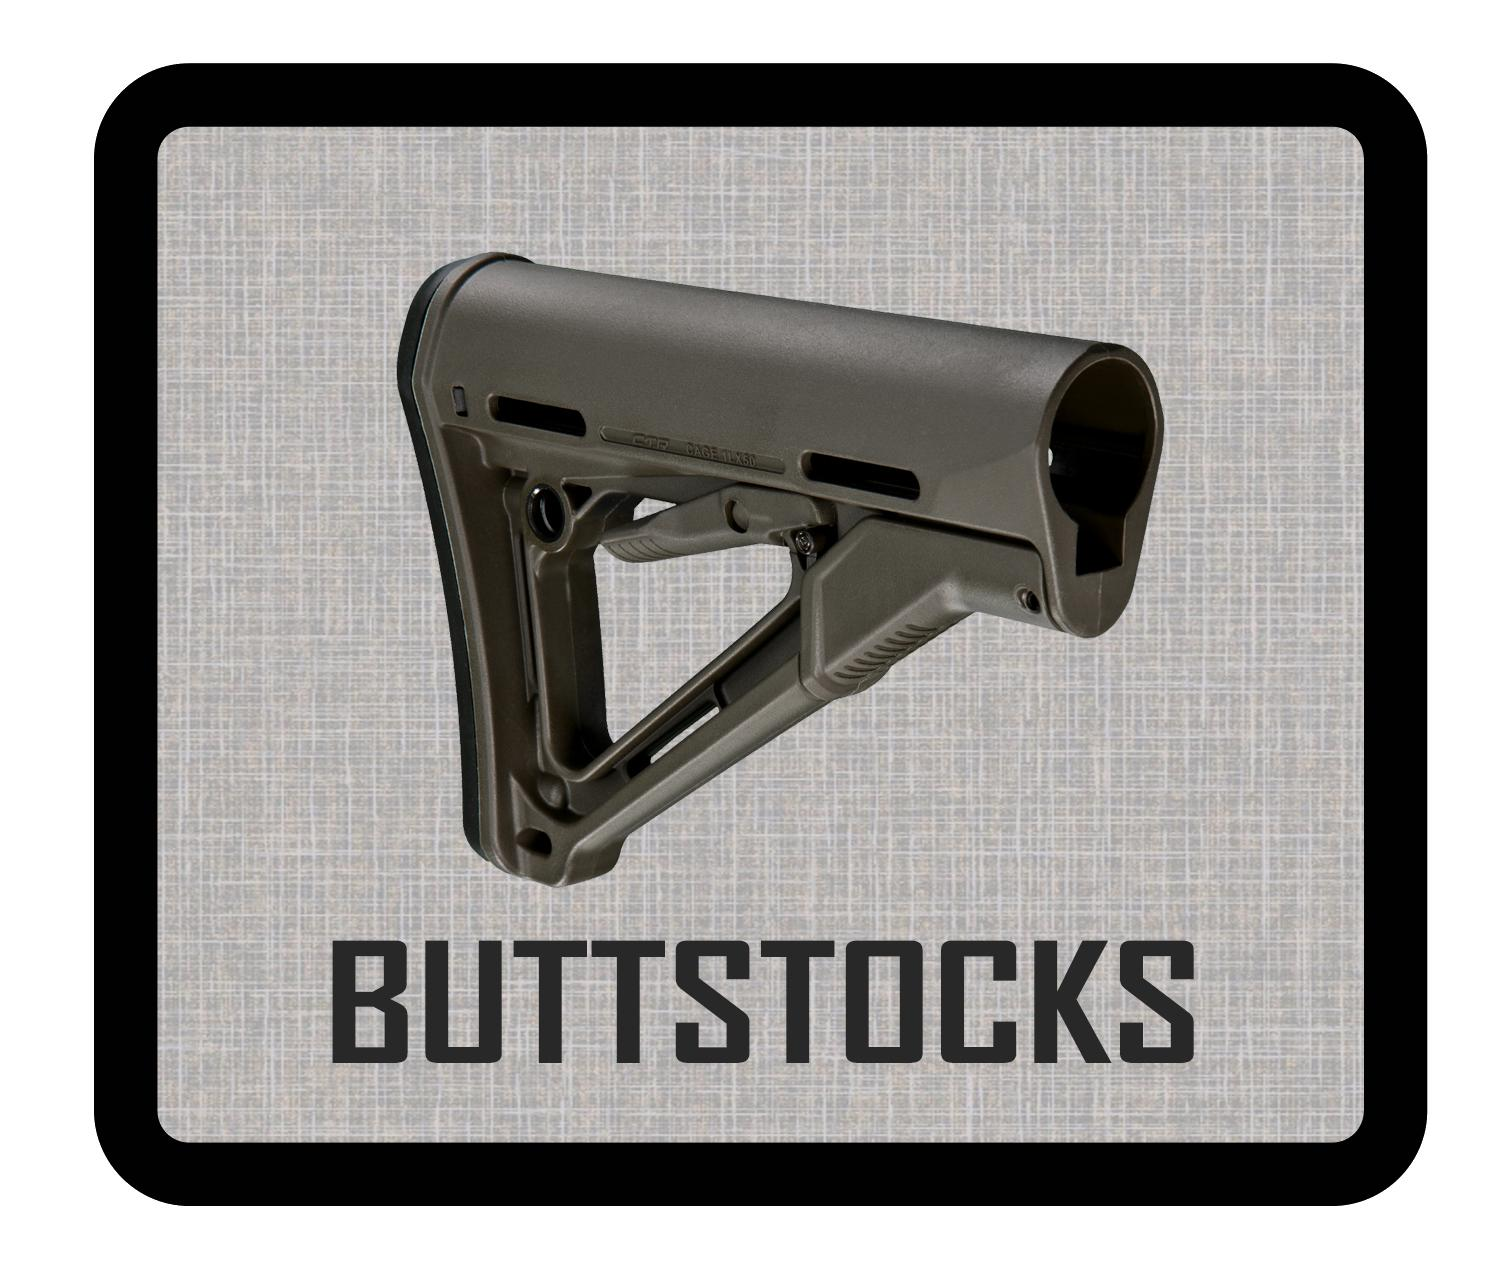 BUTTSTOCKS